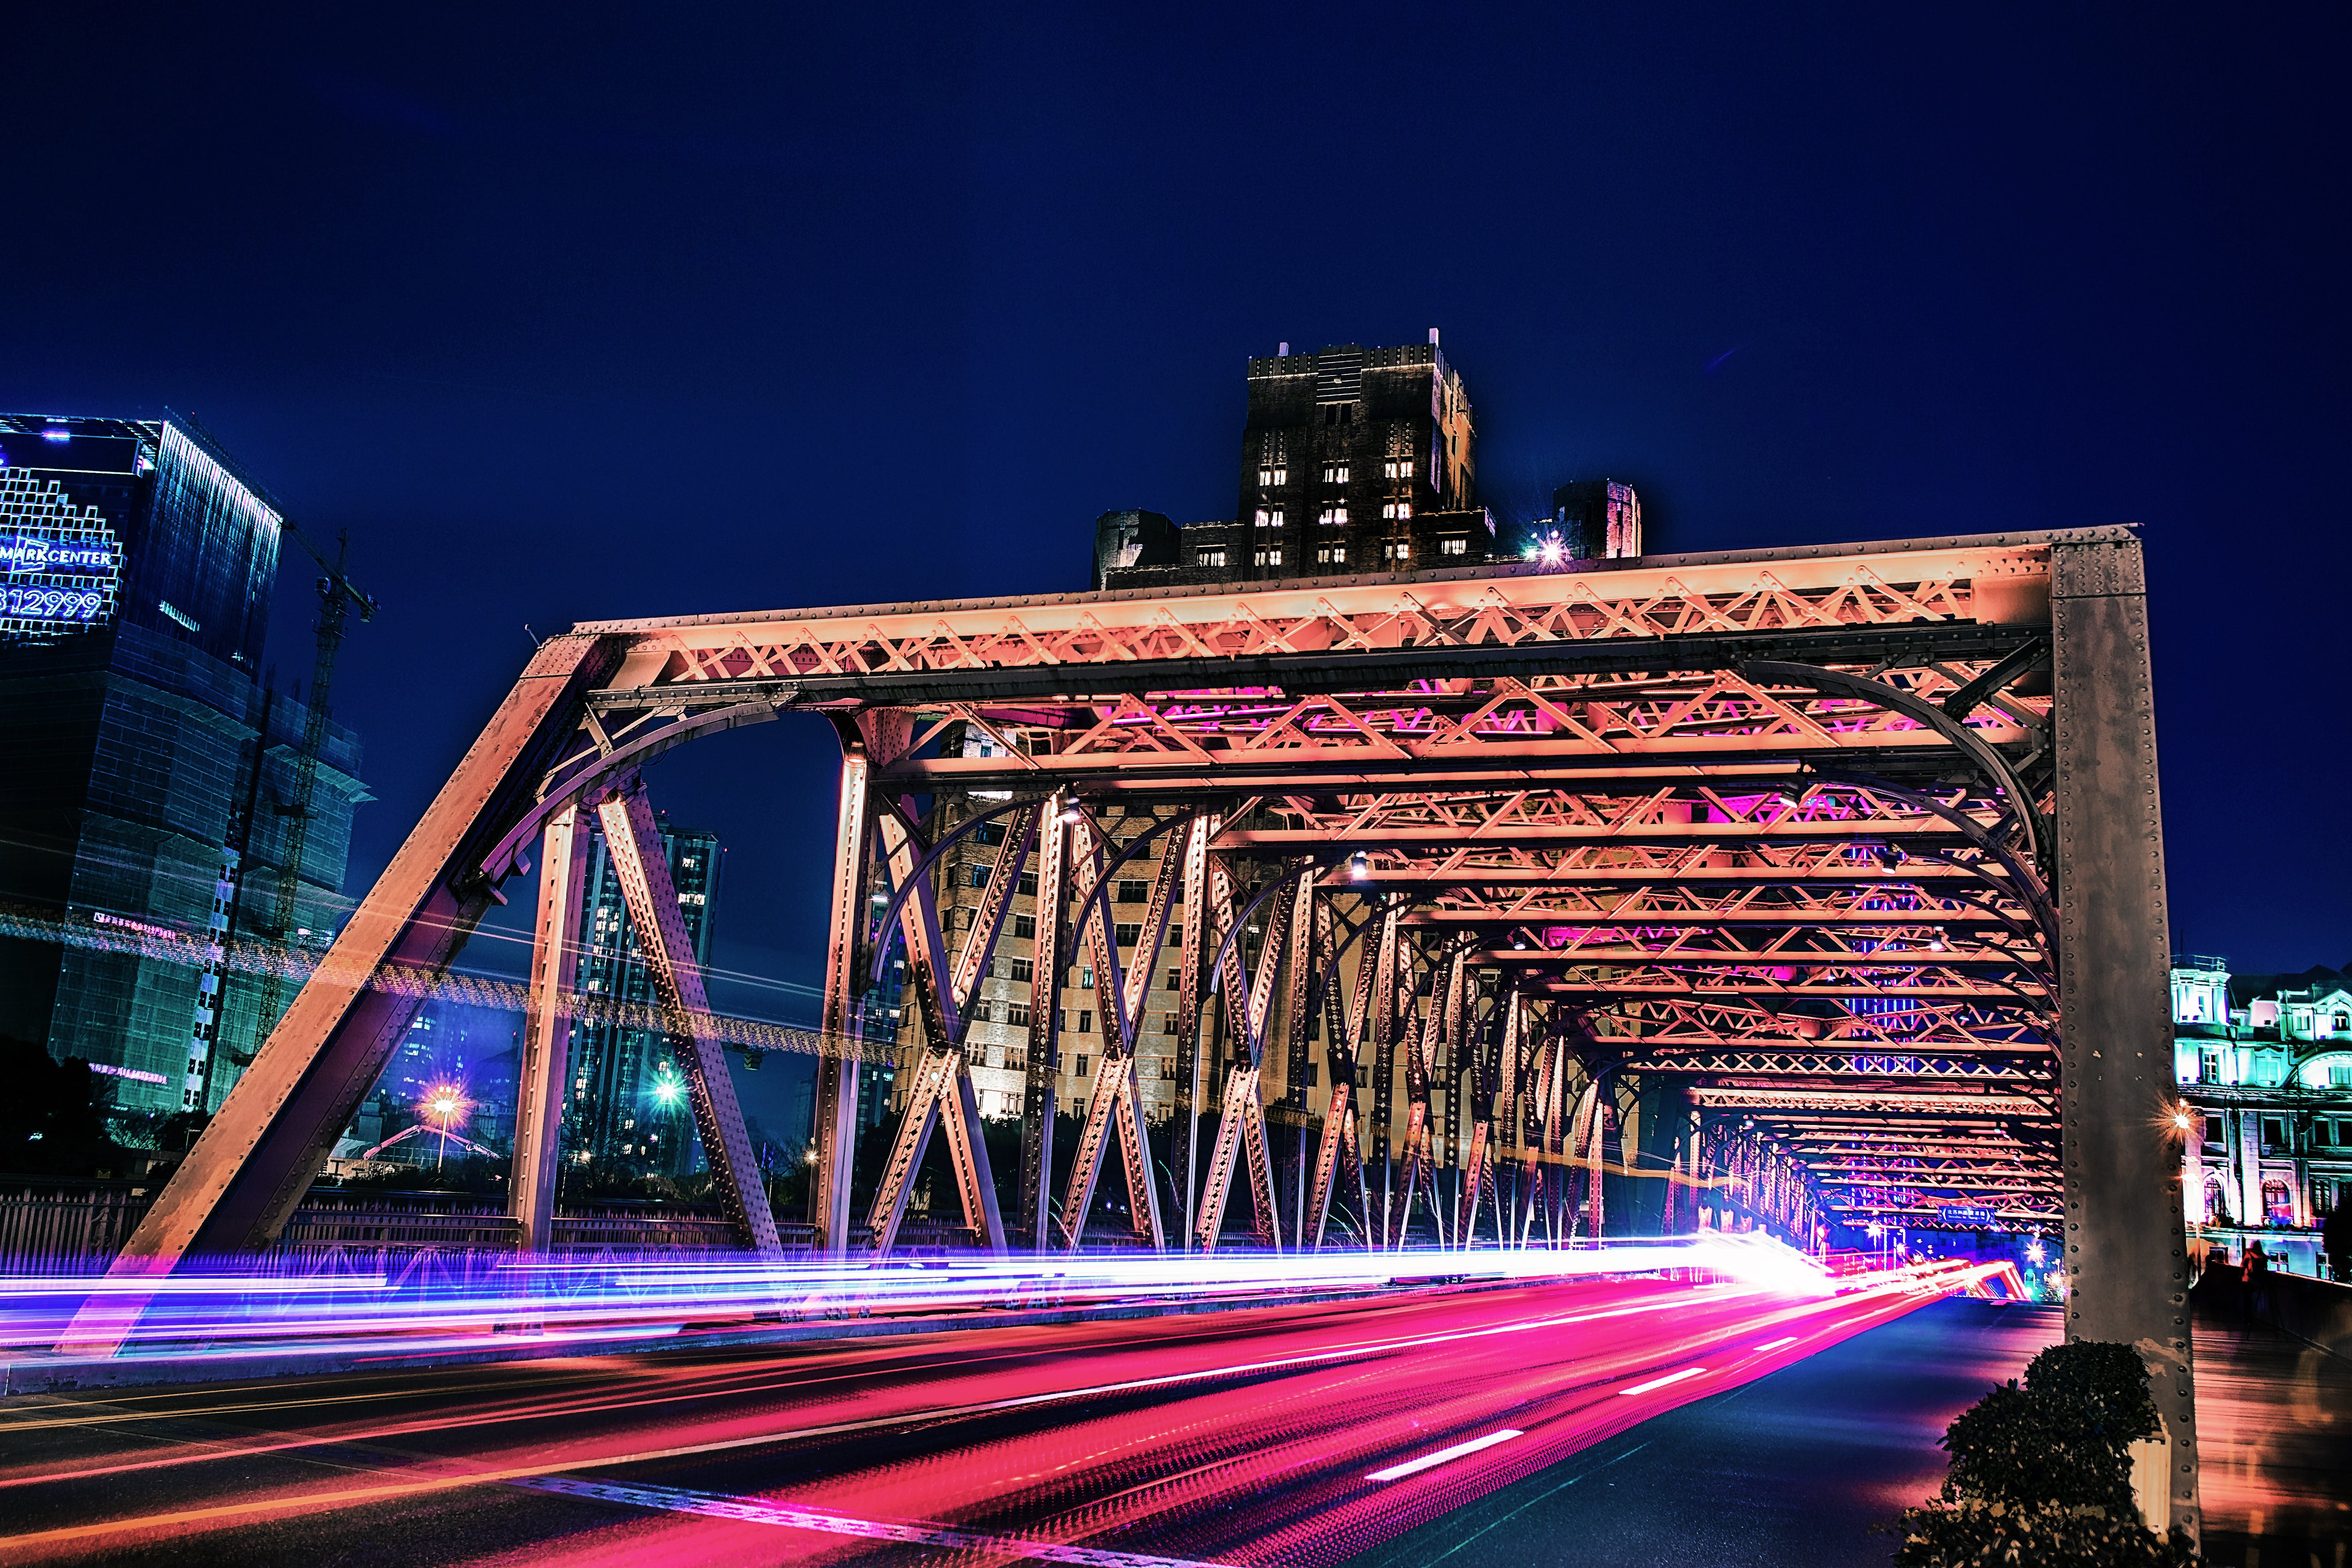 Bridge in Time-lapse Photo